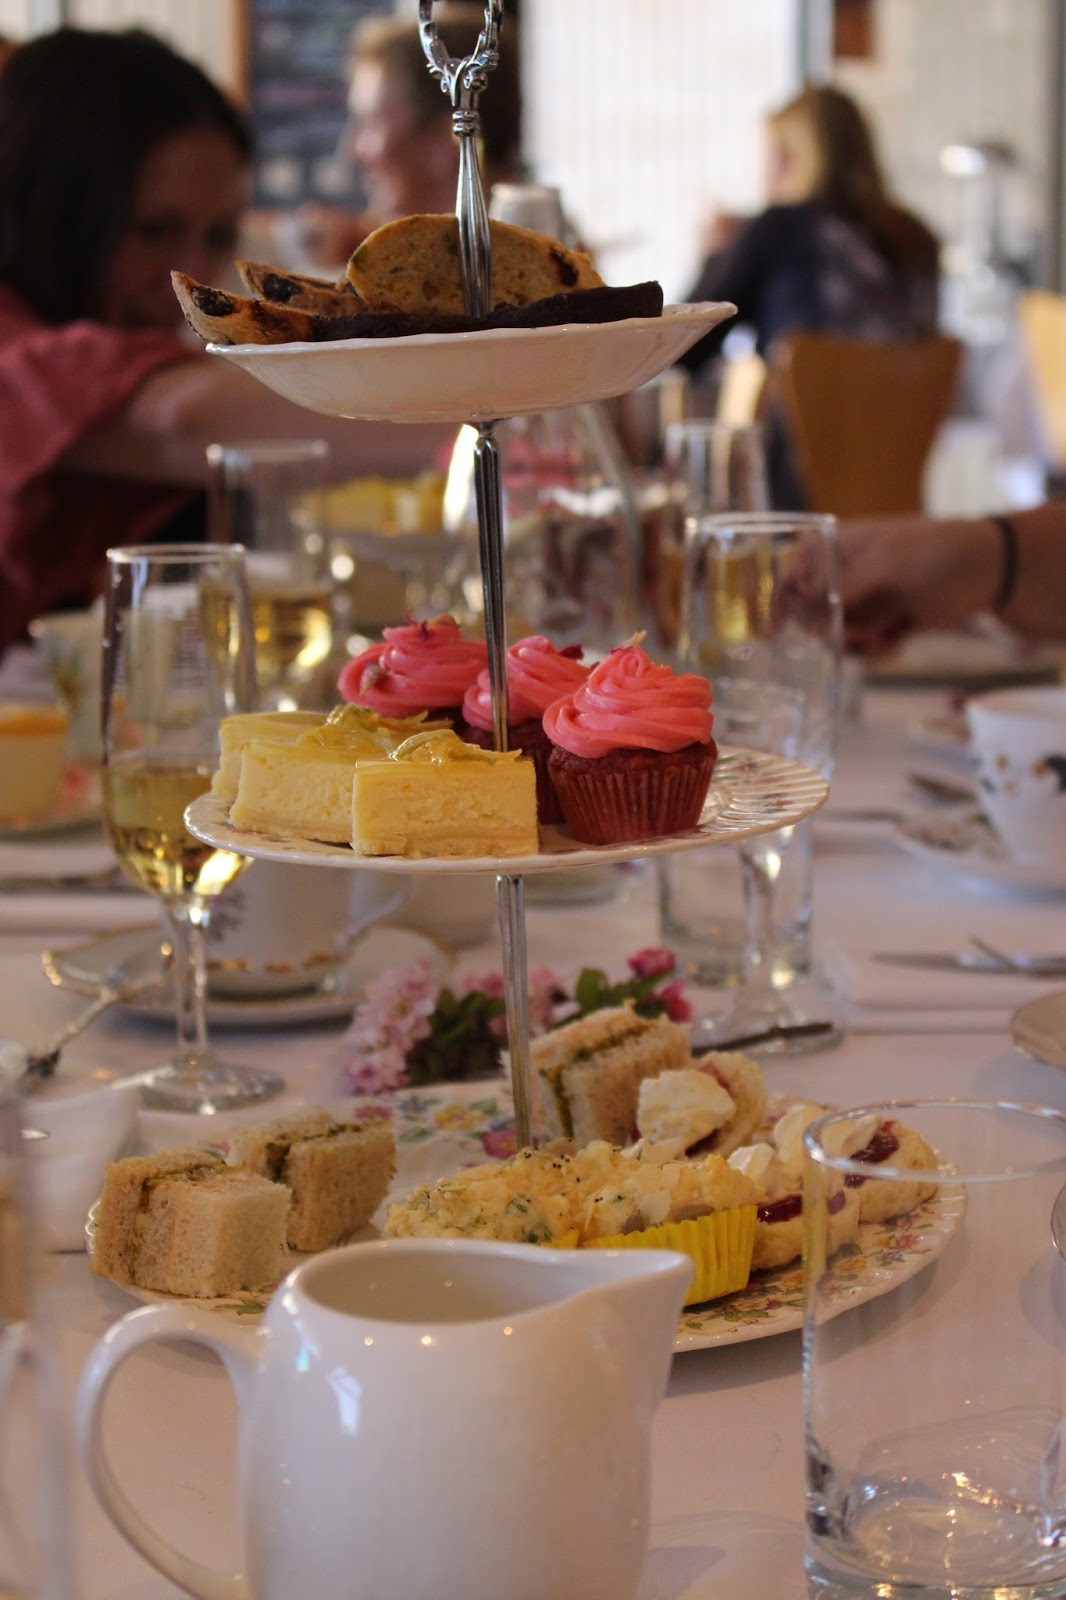 Benalla Gallery, High Tea